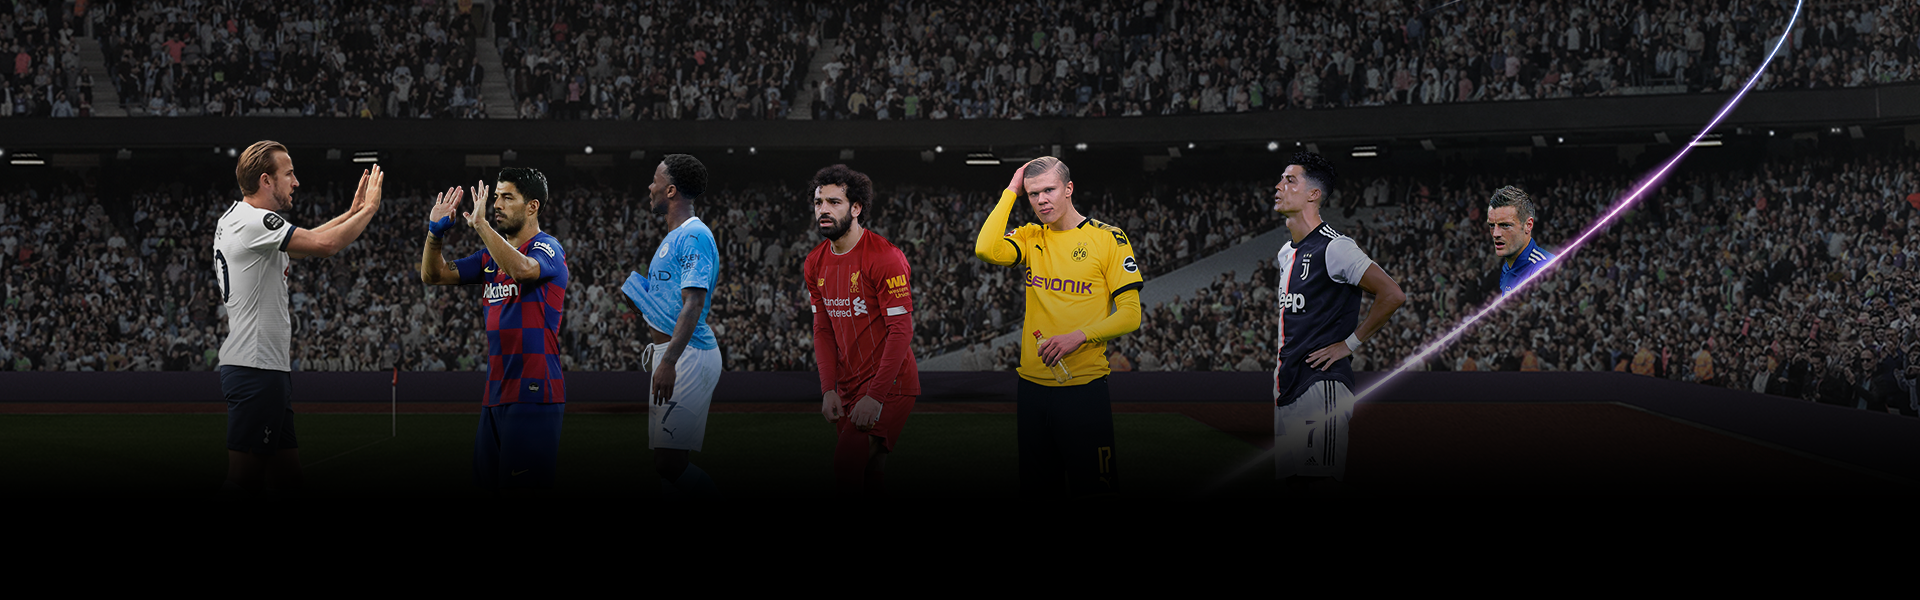 Manage your football line-up this season with BT TV's Unlimited Substitutions